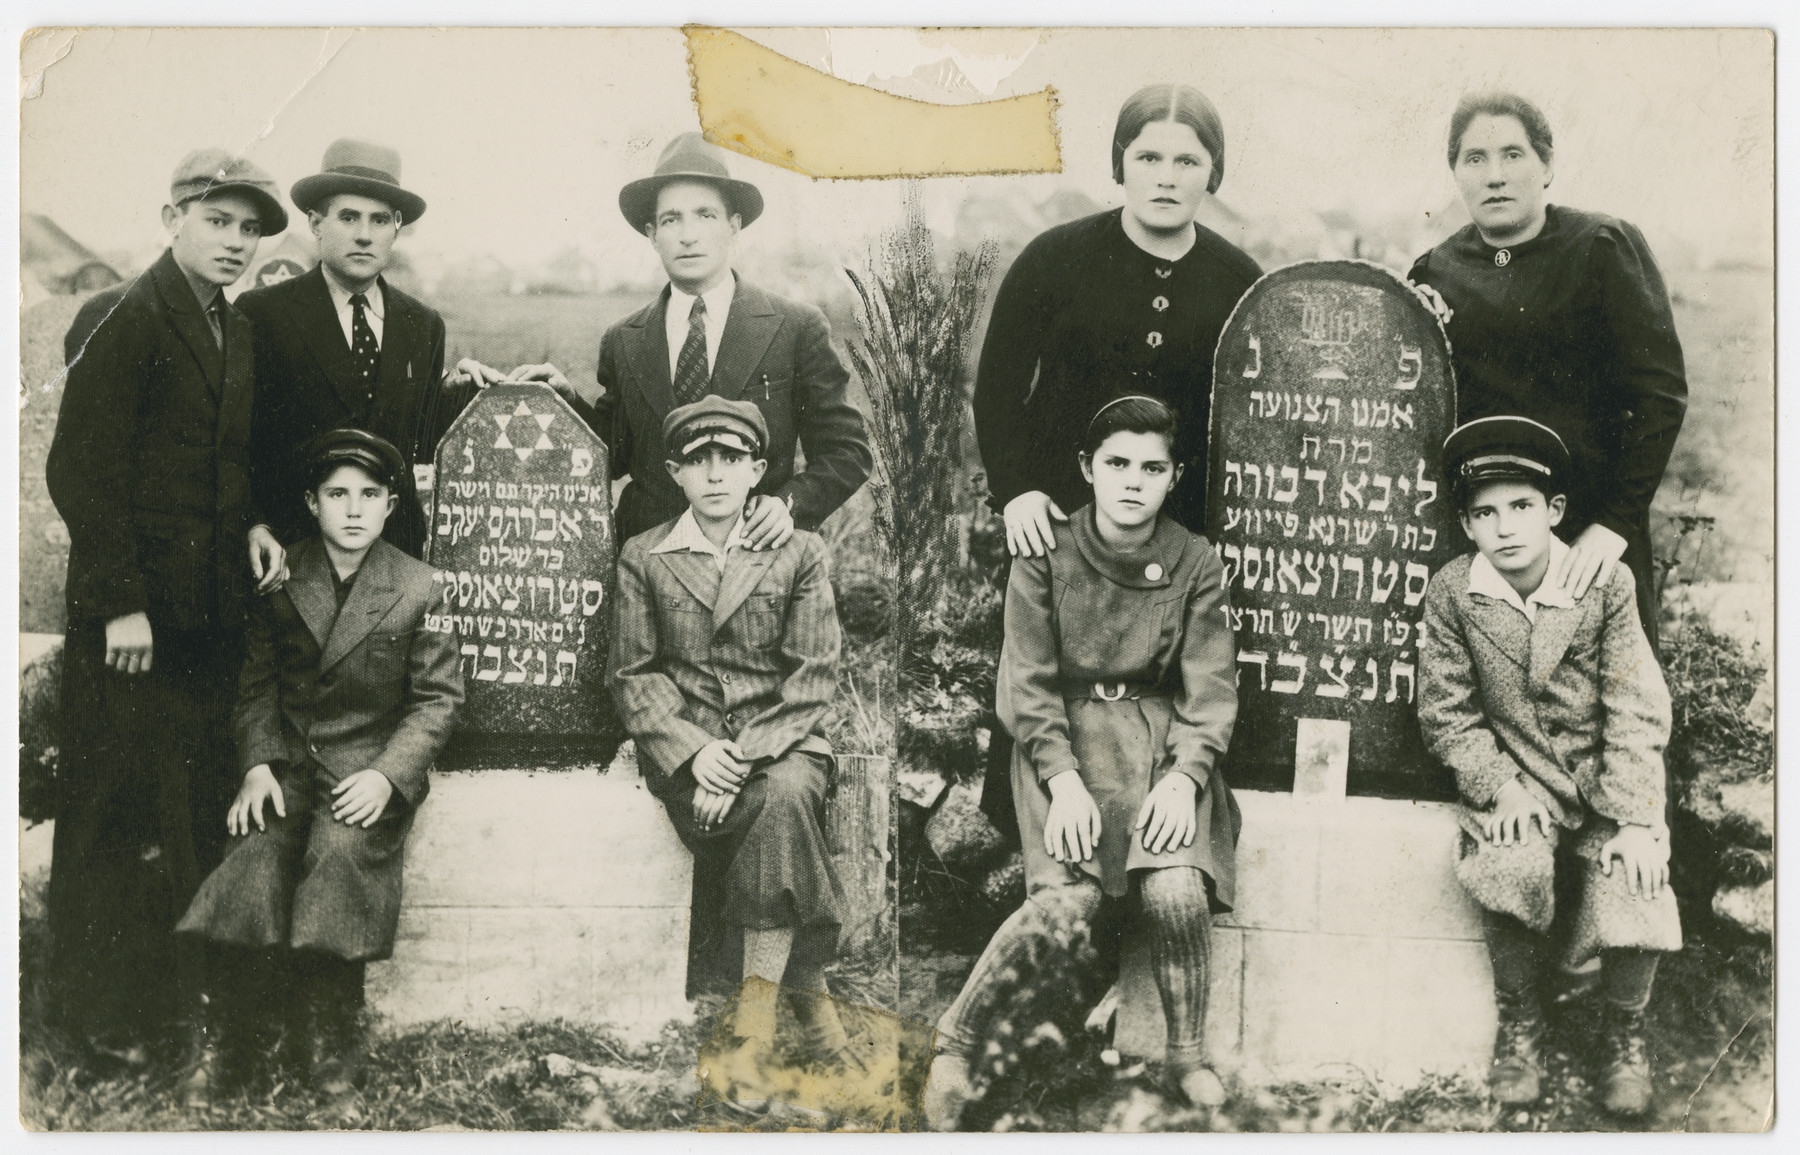 The  Struczanski family gathers by the tombstones of Avraham Yaakov and Liba Devorah  Struczanski.  Aron Struczanski seated far right and left (note mirror effect), is pictured with members of his immediate family.  Pictured are, Aron's brother Fajwel (far left), father Jona (second from left), mother Rywa (second from right), sister Rachel Struczanski (seated second from right).